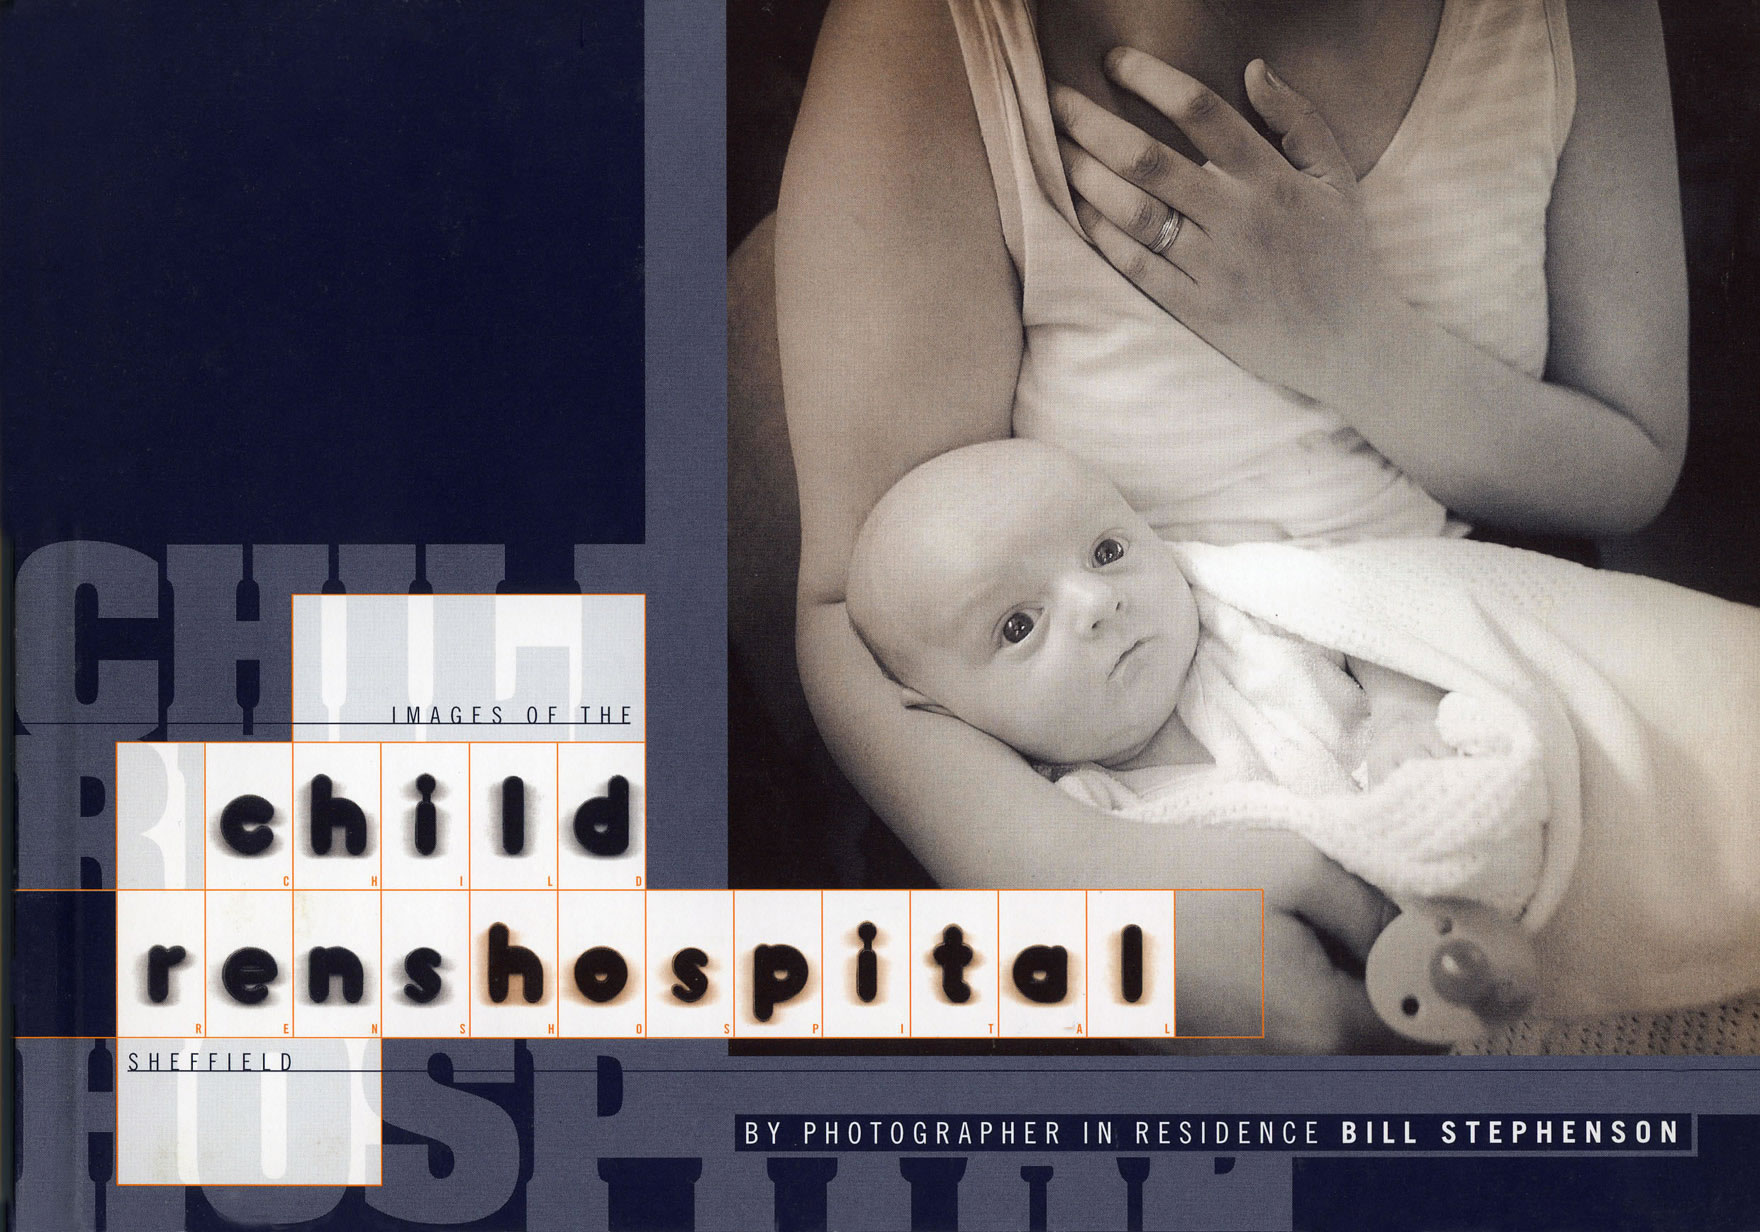 Sheffield Children's Hospital - Bill Stephenson